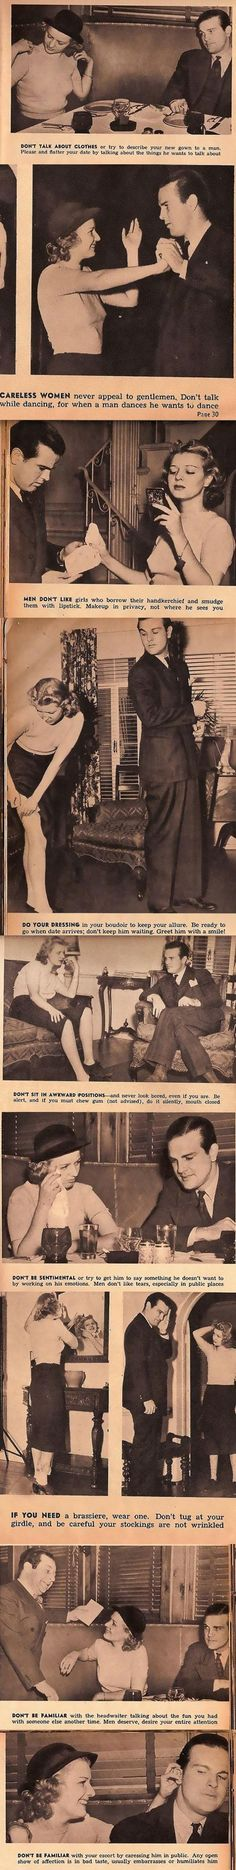 Sign o' the times (1930's dating advice)